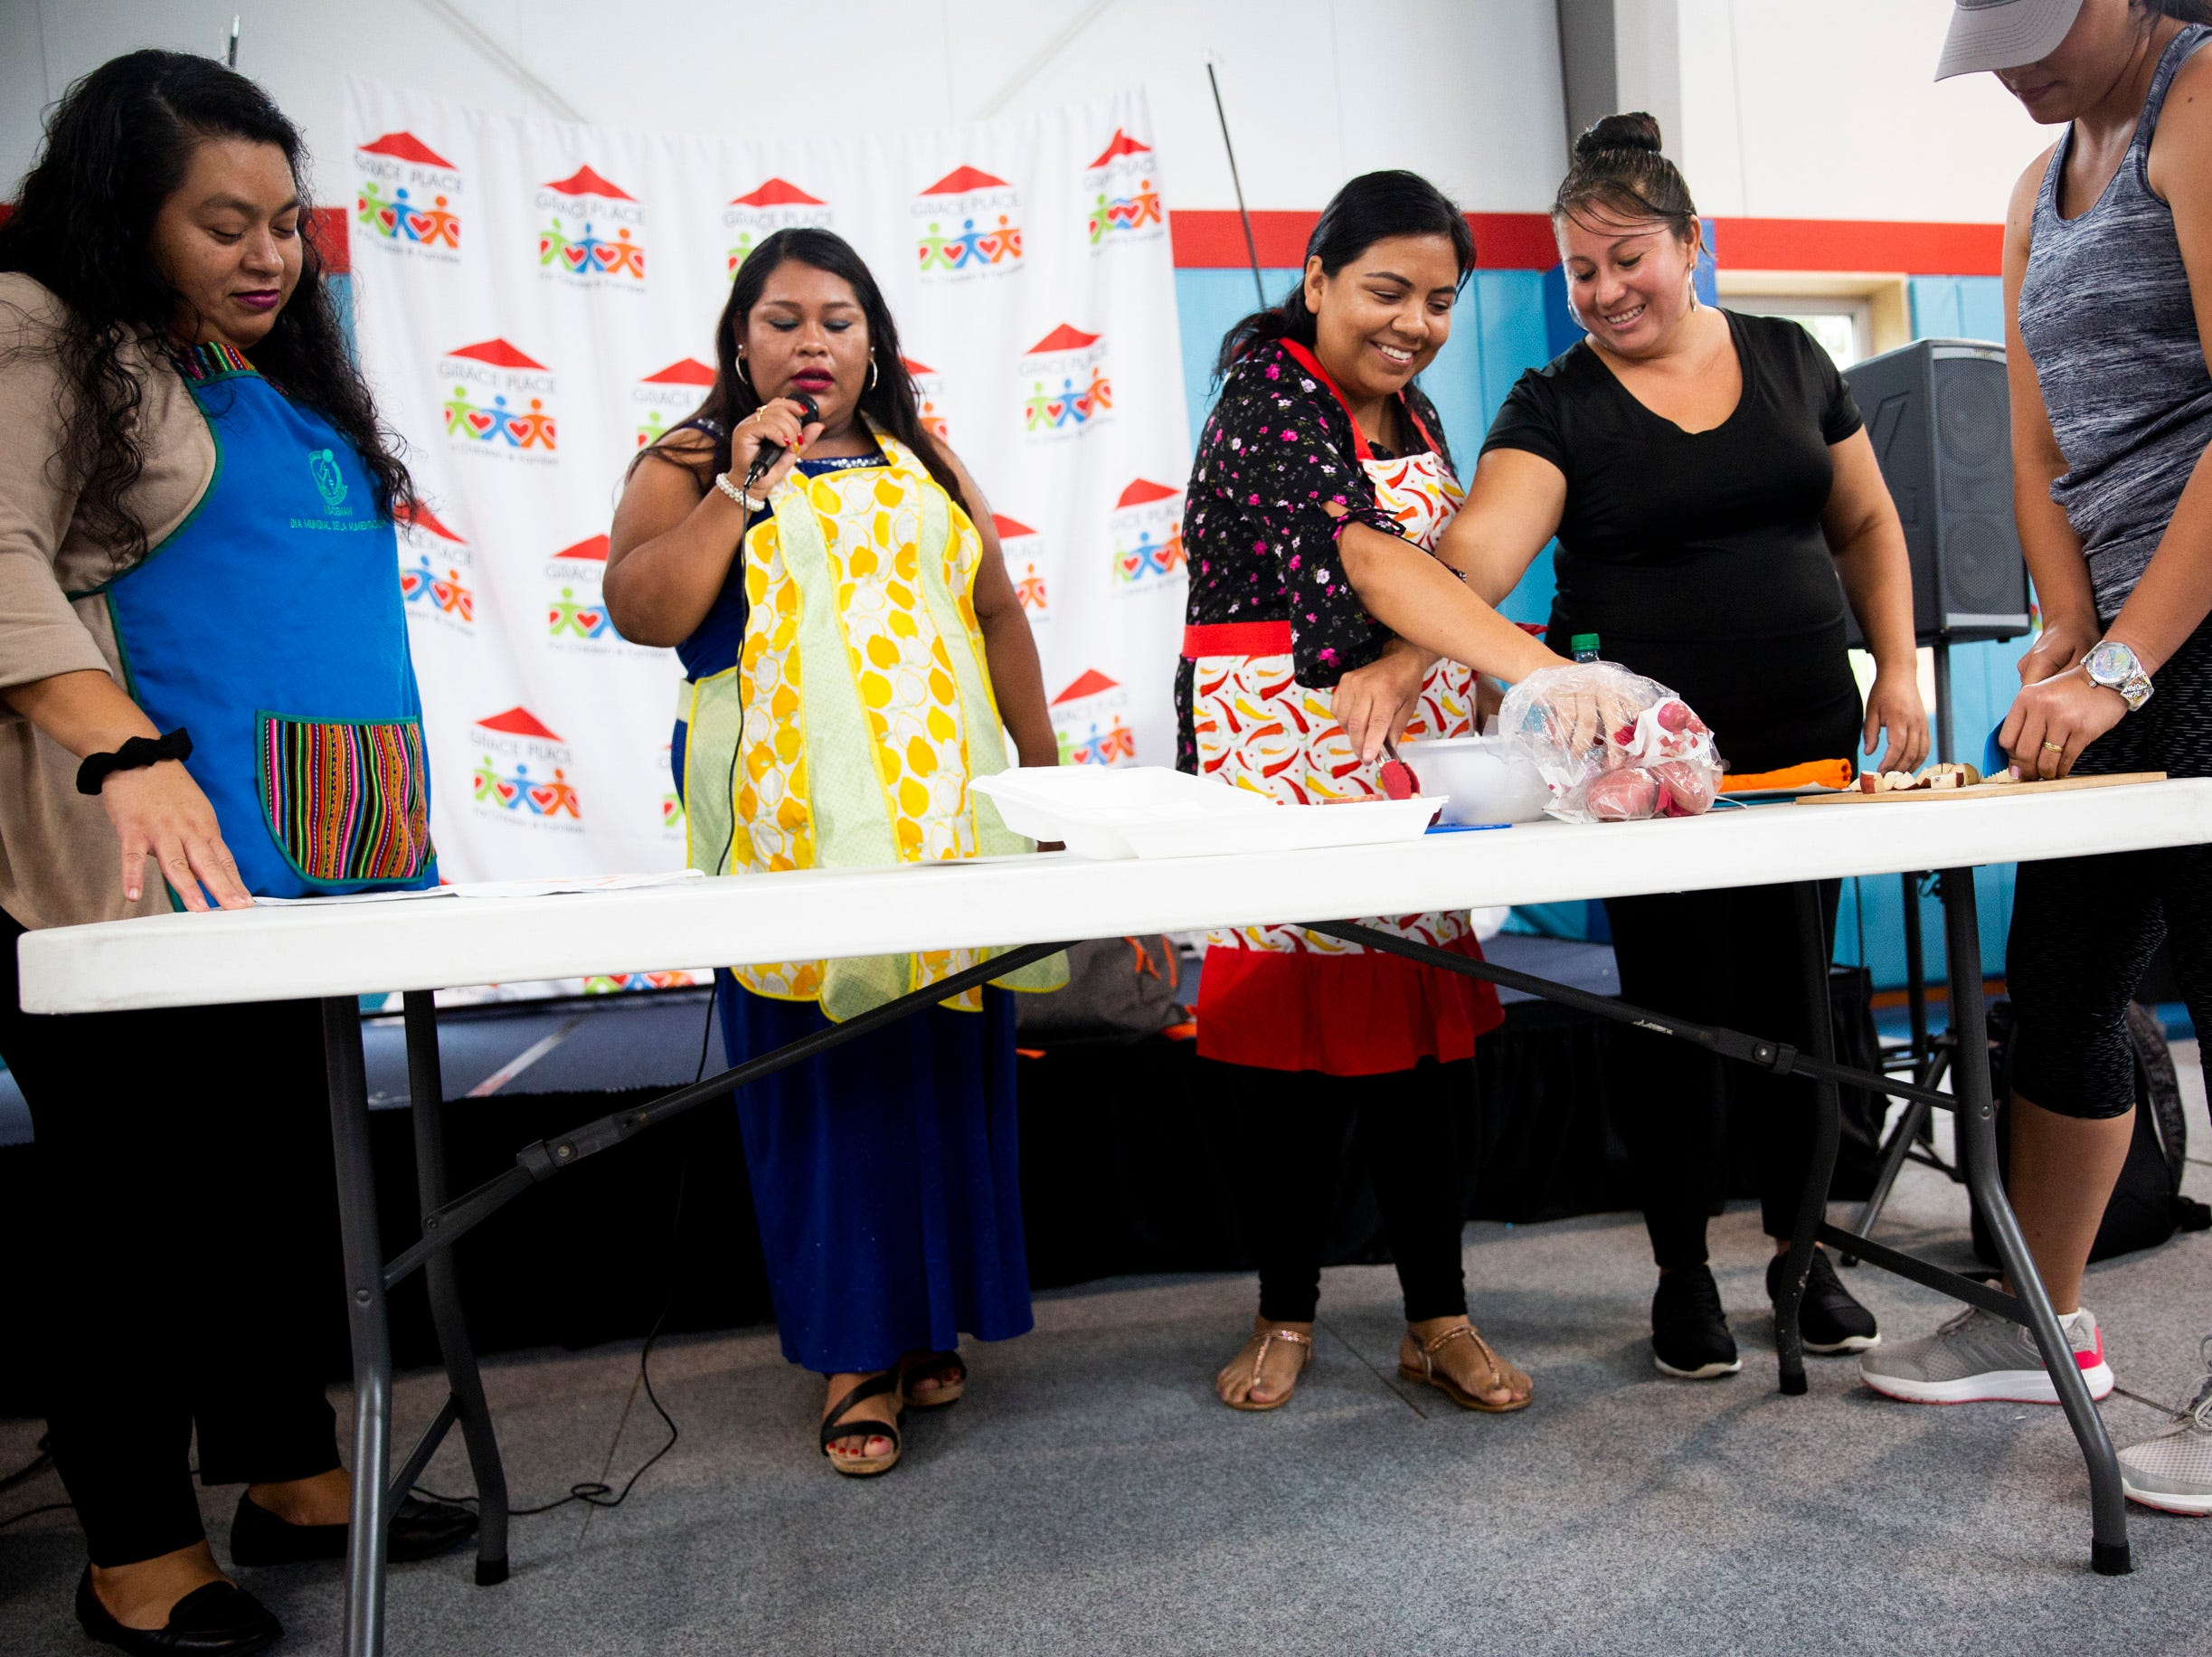 Women from the Bright Beginnings family literacy program perform a skit during their graduation at Grace Place in Golden Gate on Wednesday, May 15, 2019.